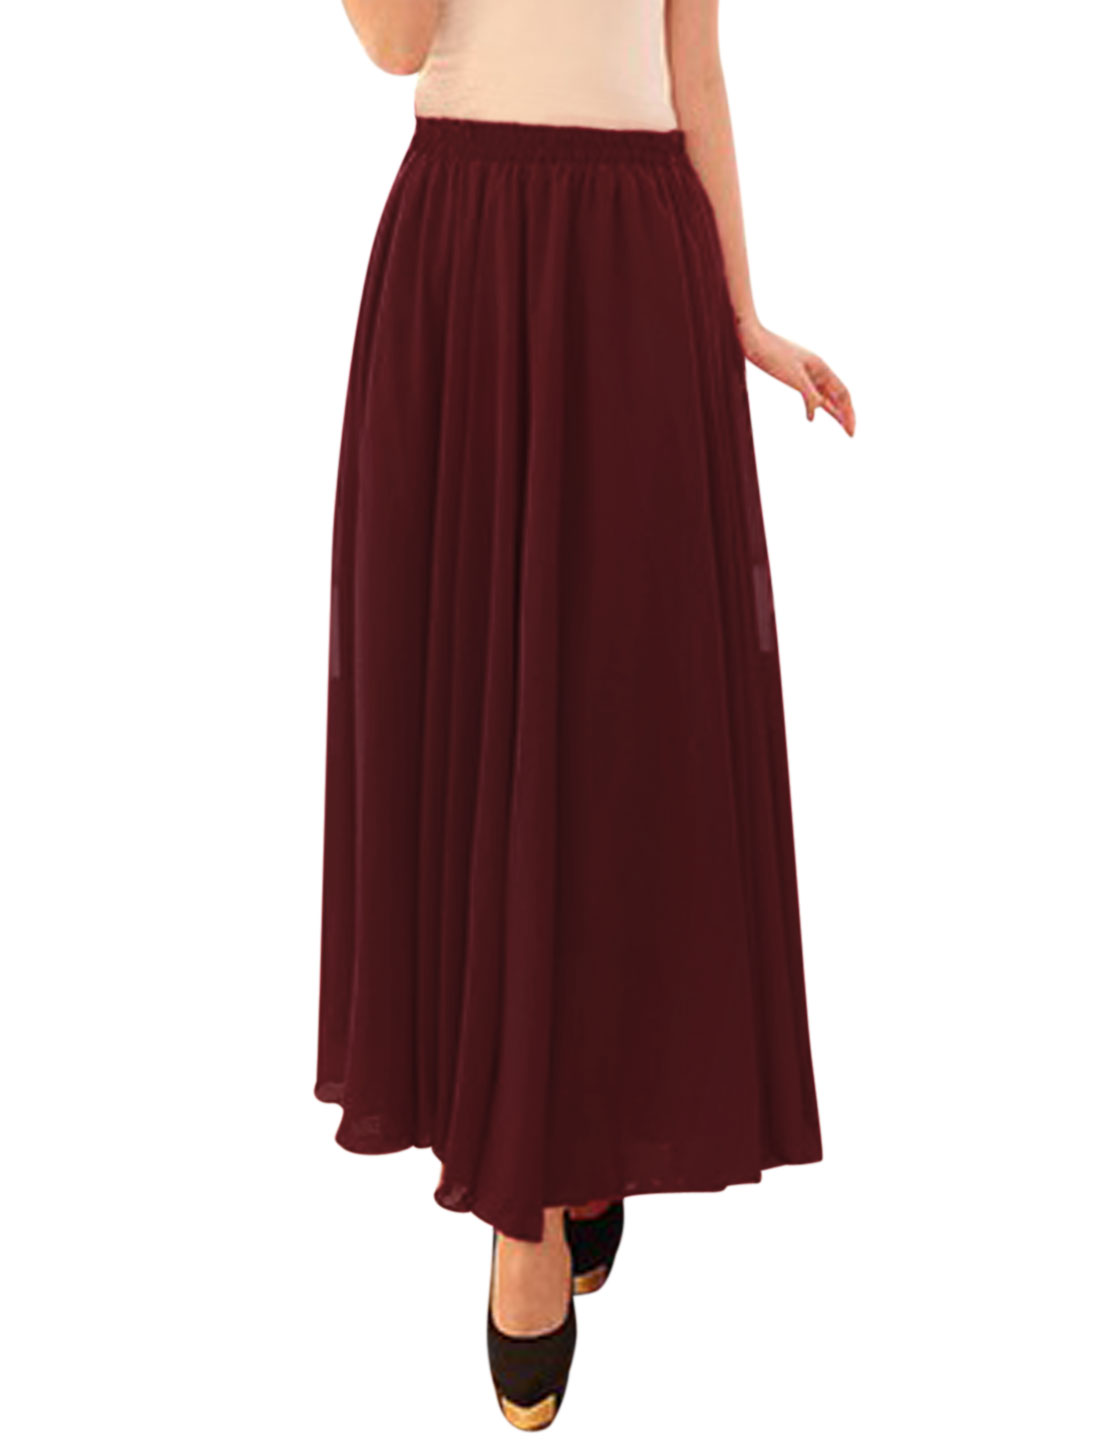 Women Mid Rise Elastic Waist Fully Lined Casual Maxi Skirts Burgundy S